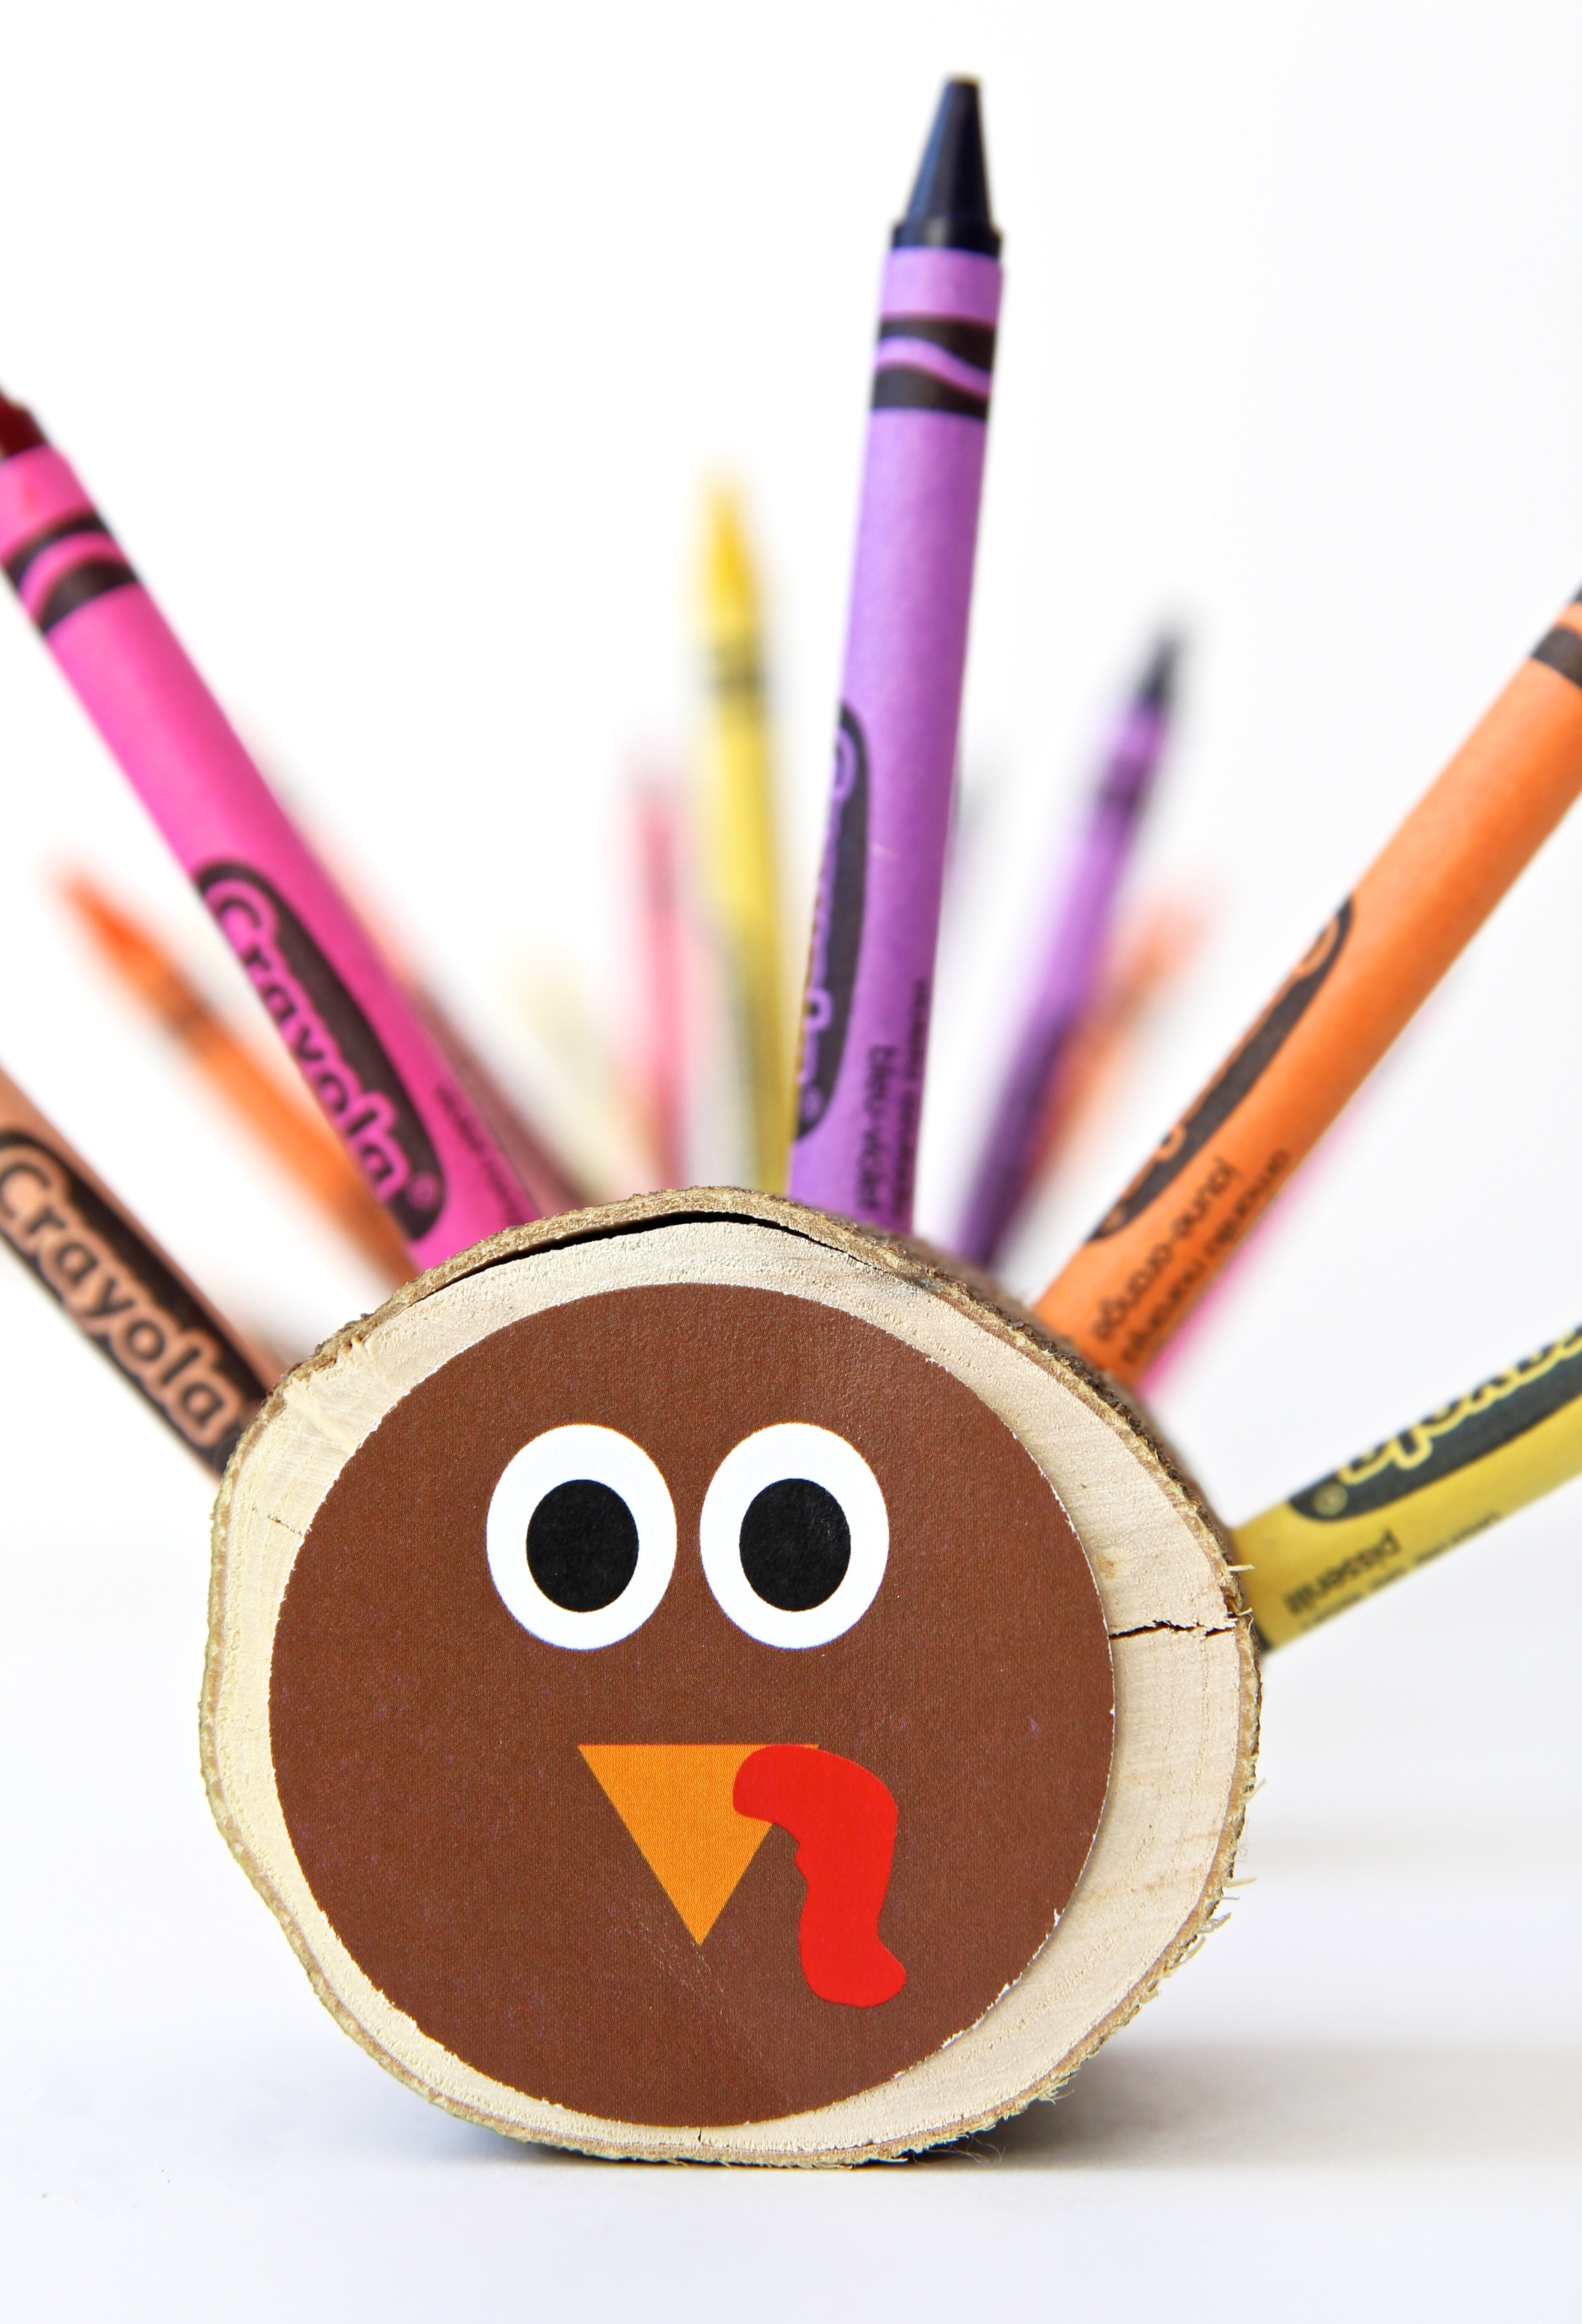 Love these Crayon Turkeys - Cute Thanksgiving Kids Table Ideas via @PagingSupermom